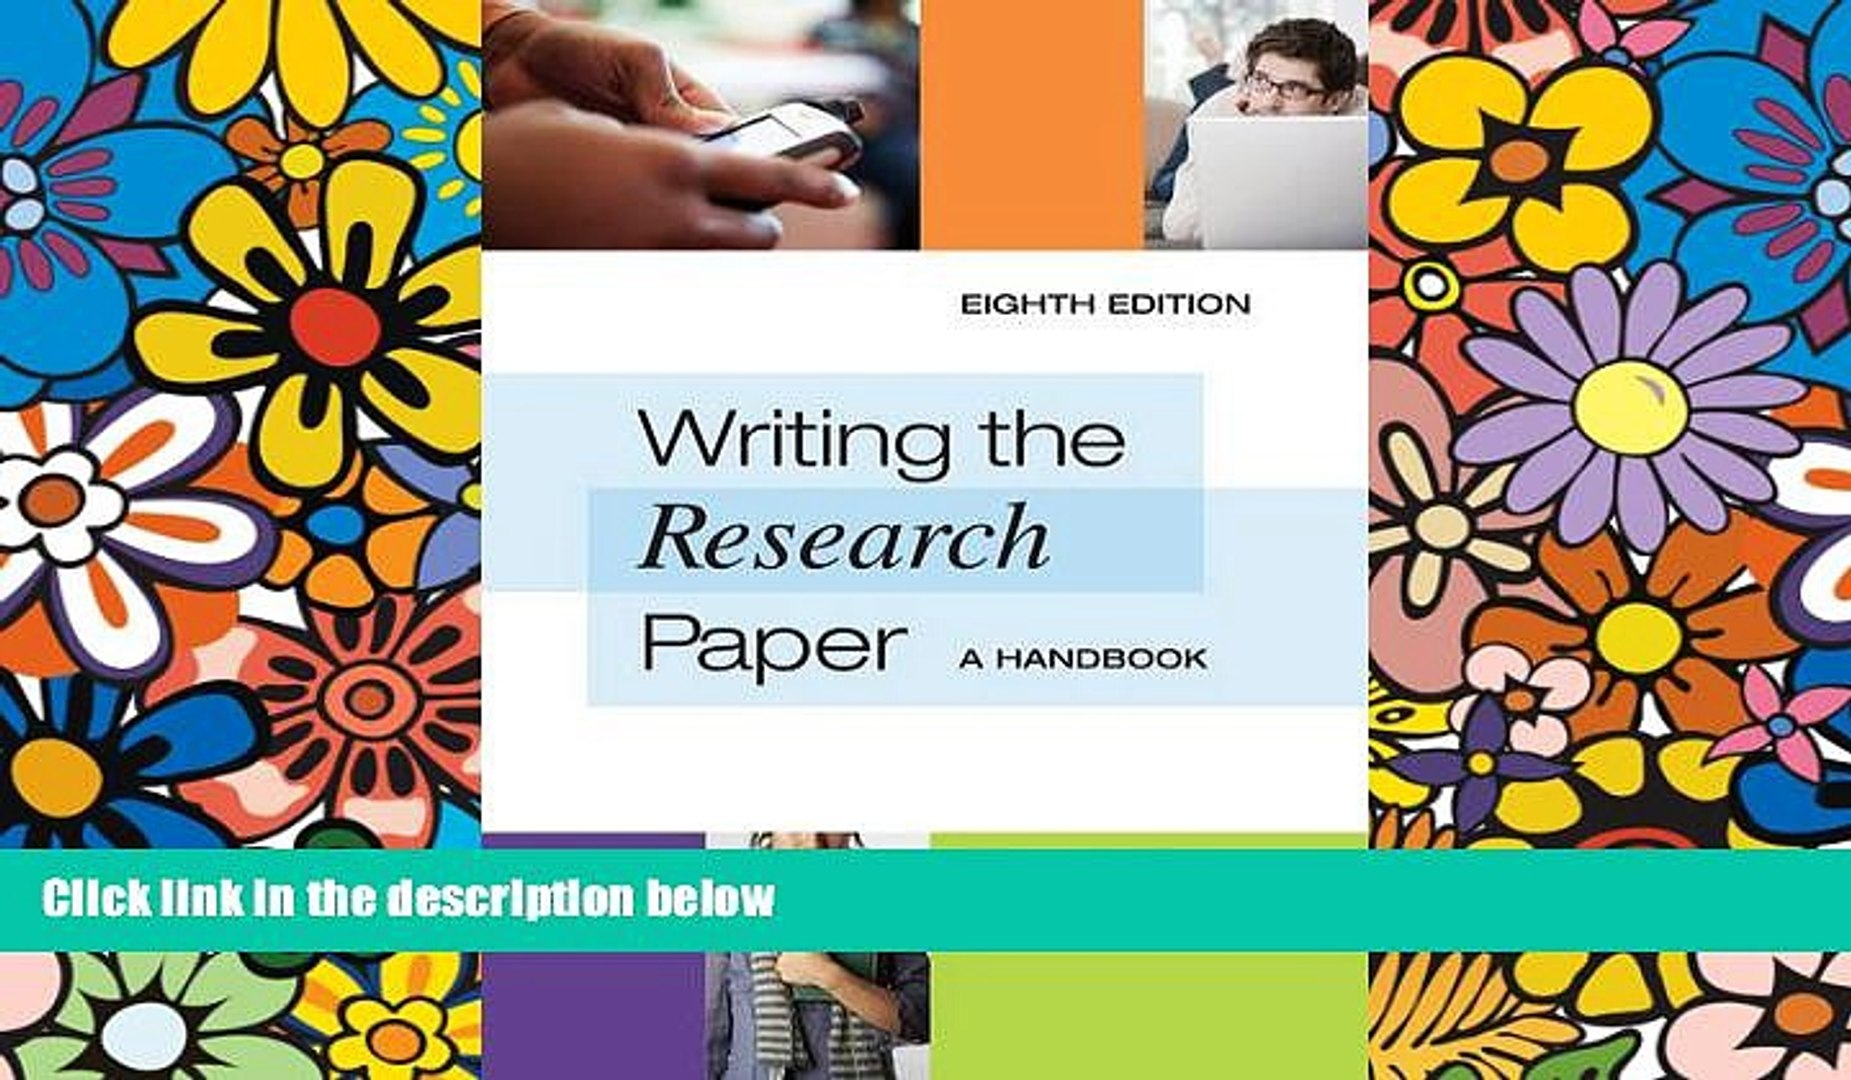 002 Writing The Research Paper Handbook X1080 Wonderful A 8th Edition Pdf Full